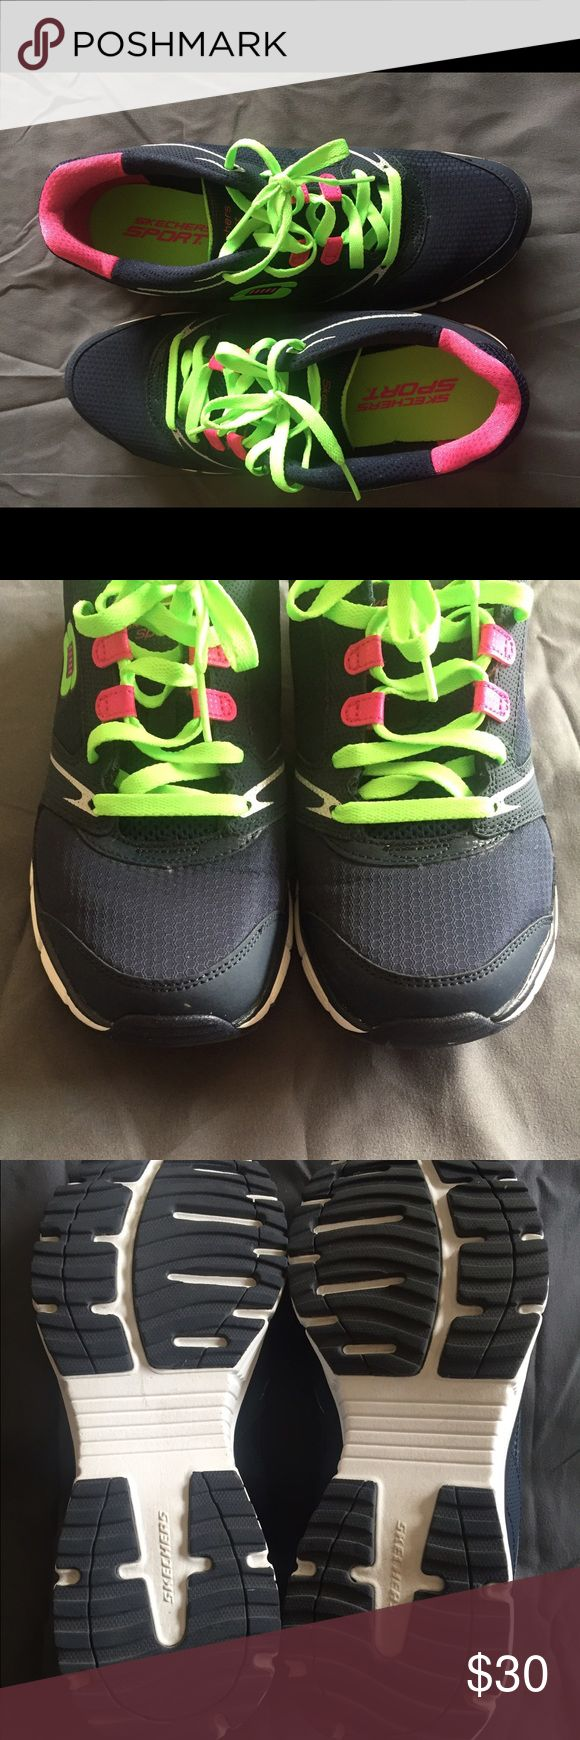 Skechers Flex Sole Skechers flex sole SPORT!  Awesome like new condition!  Pretty colors too!! Skechers Shoes Sneakers